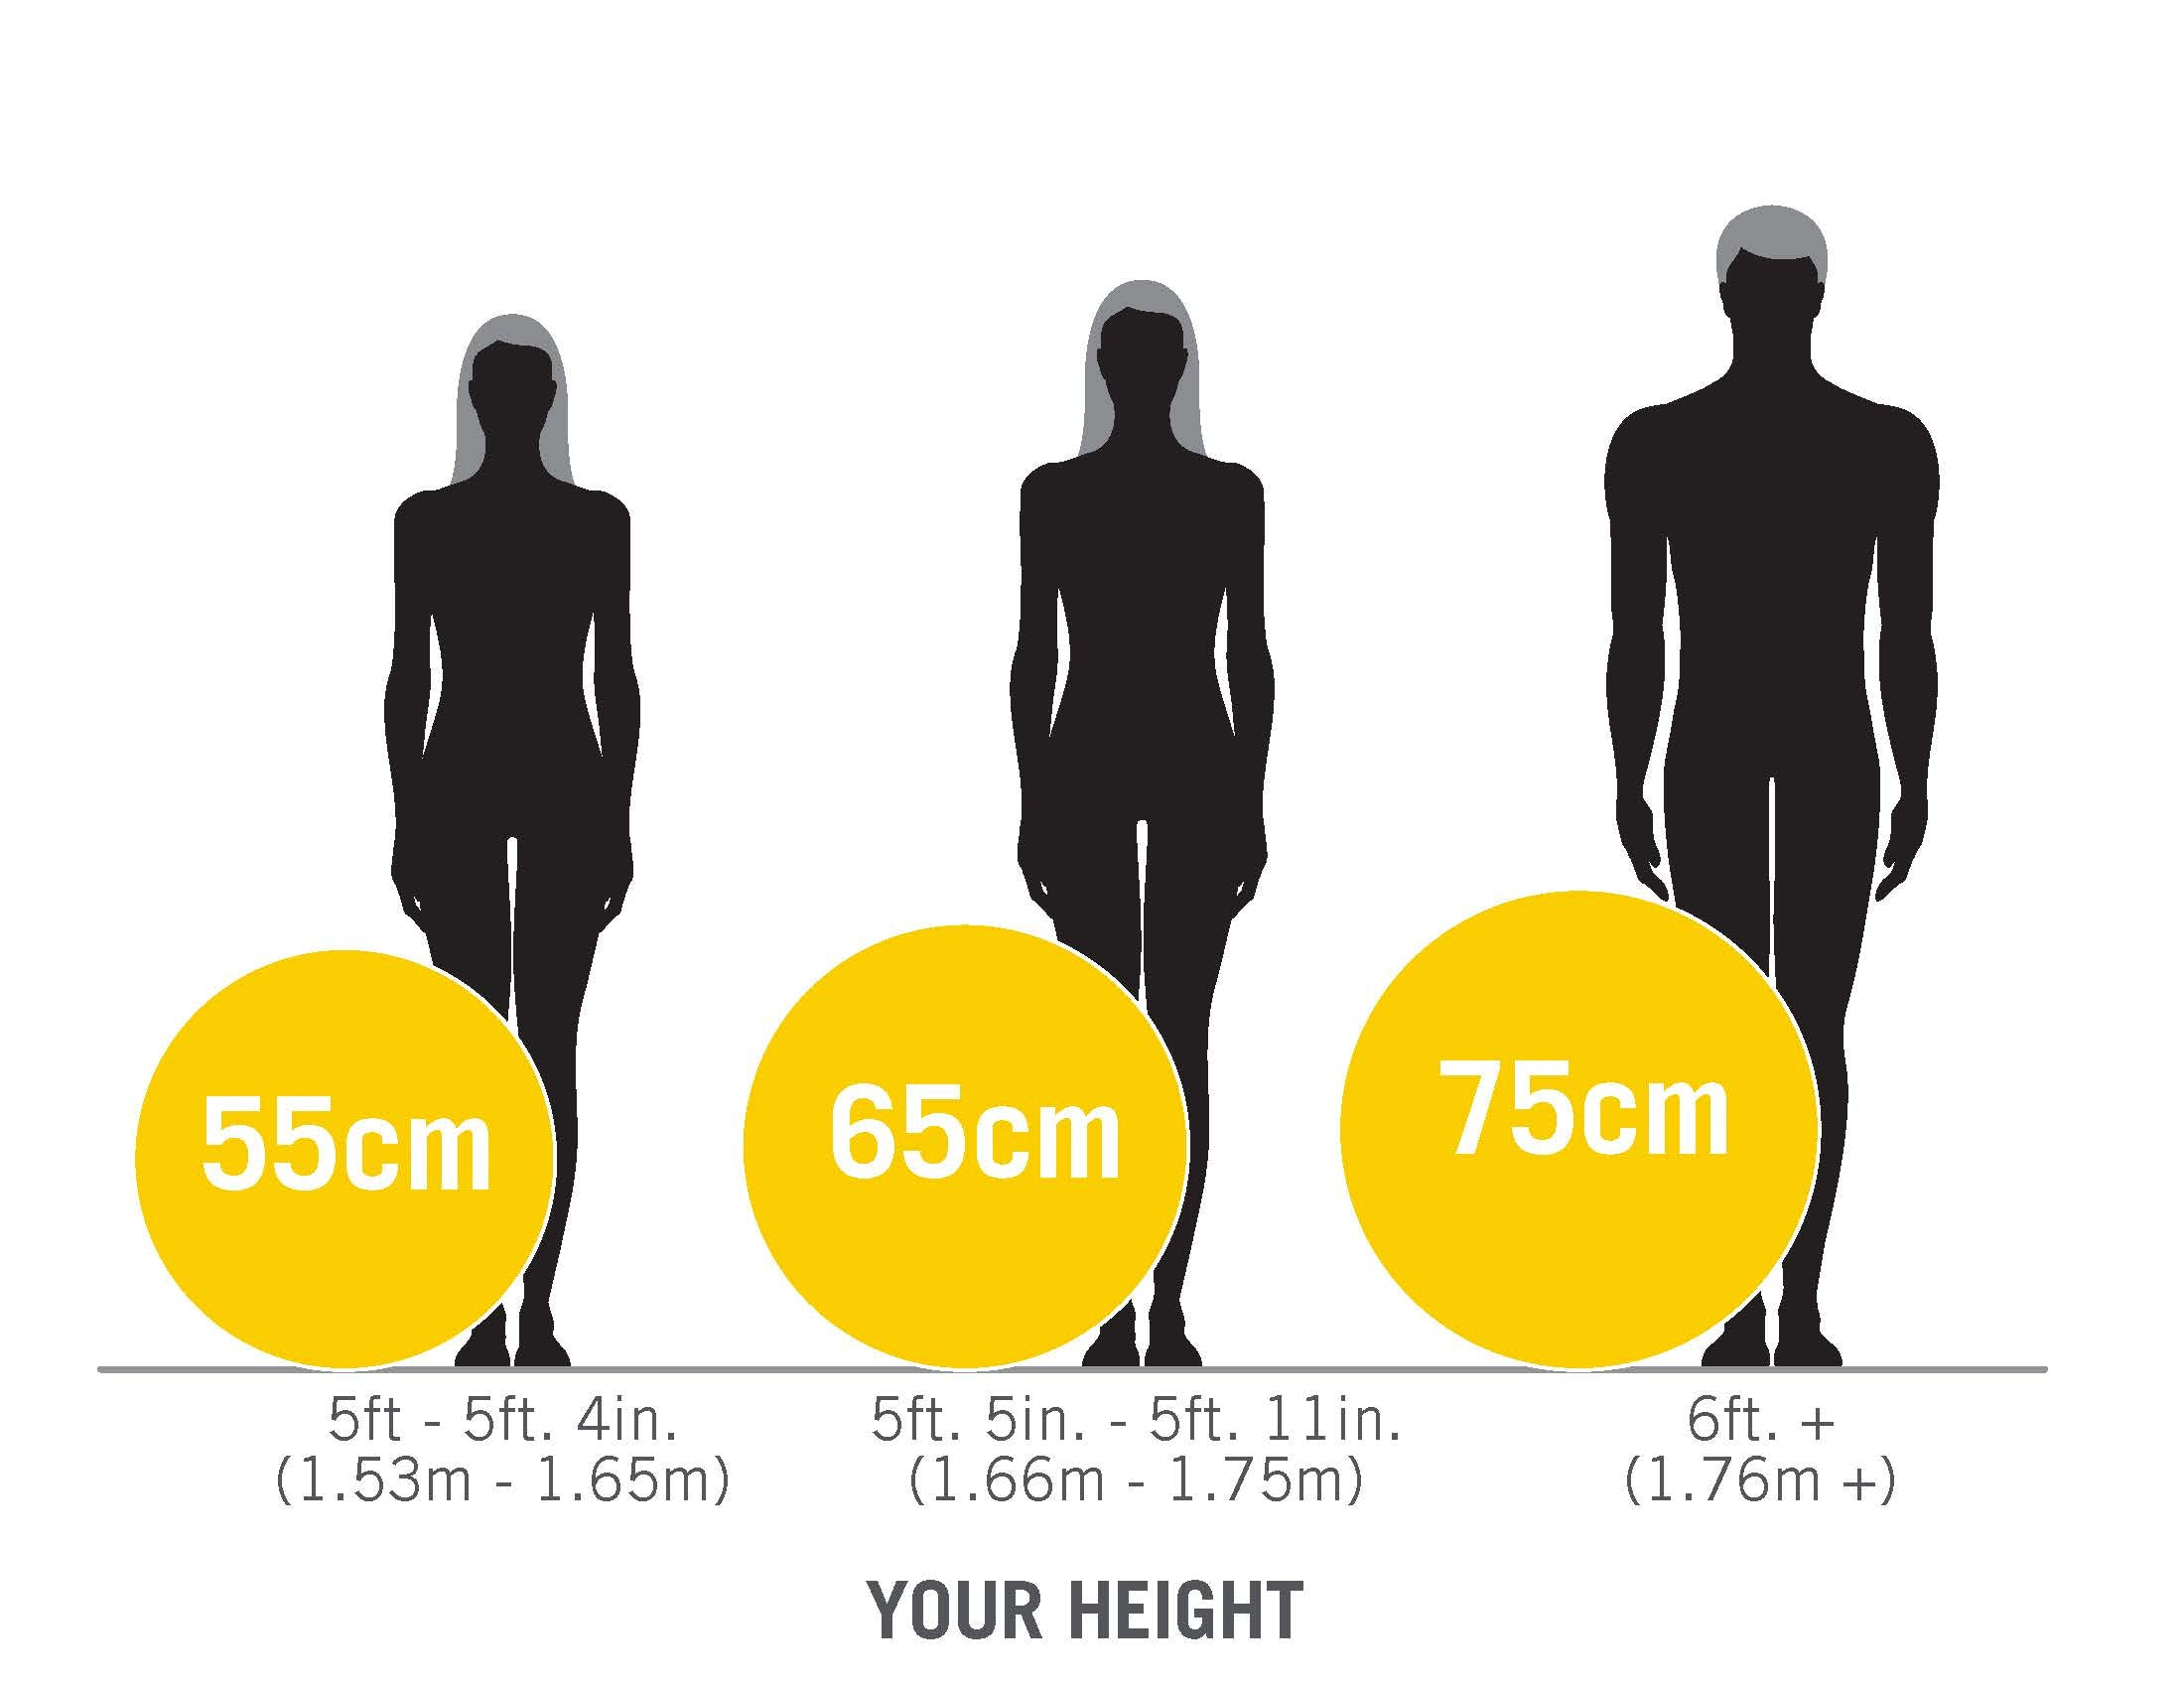 Everlast Fitness Ball Size Guide